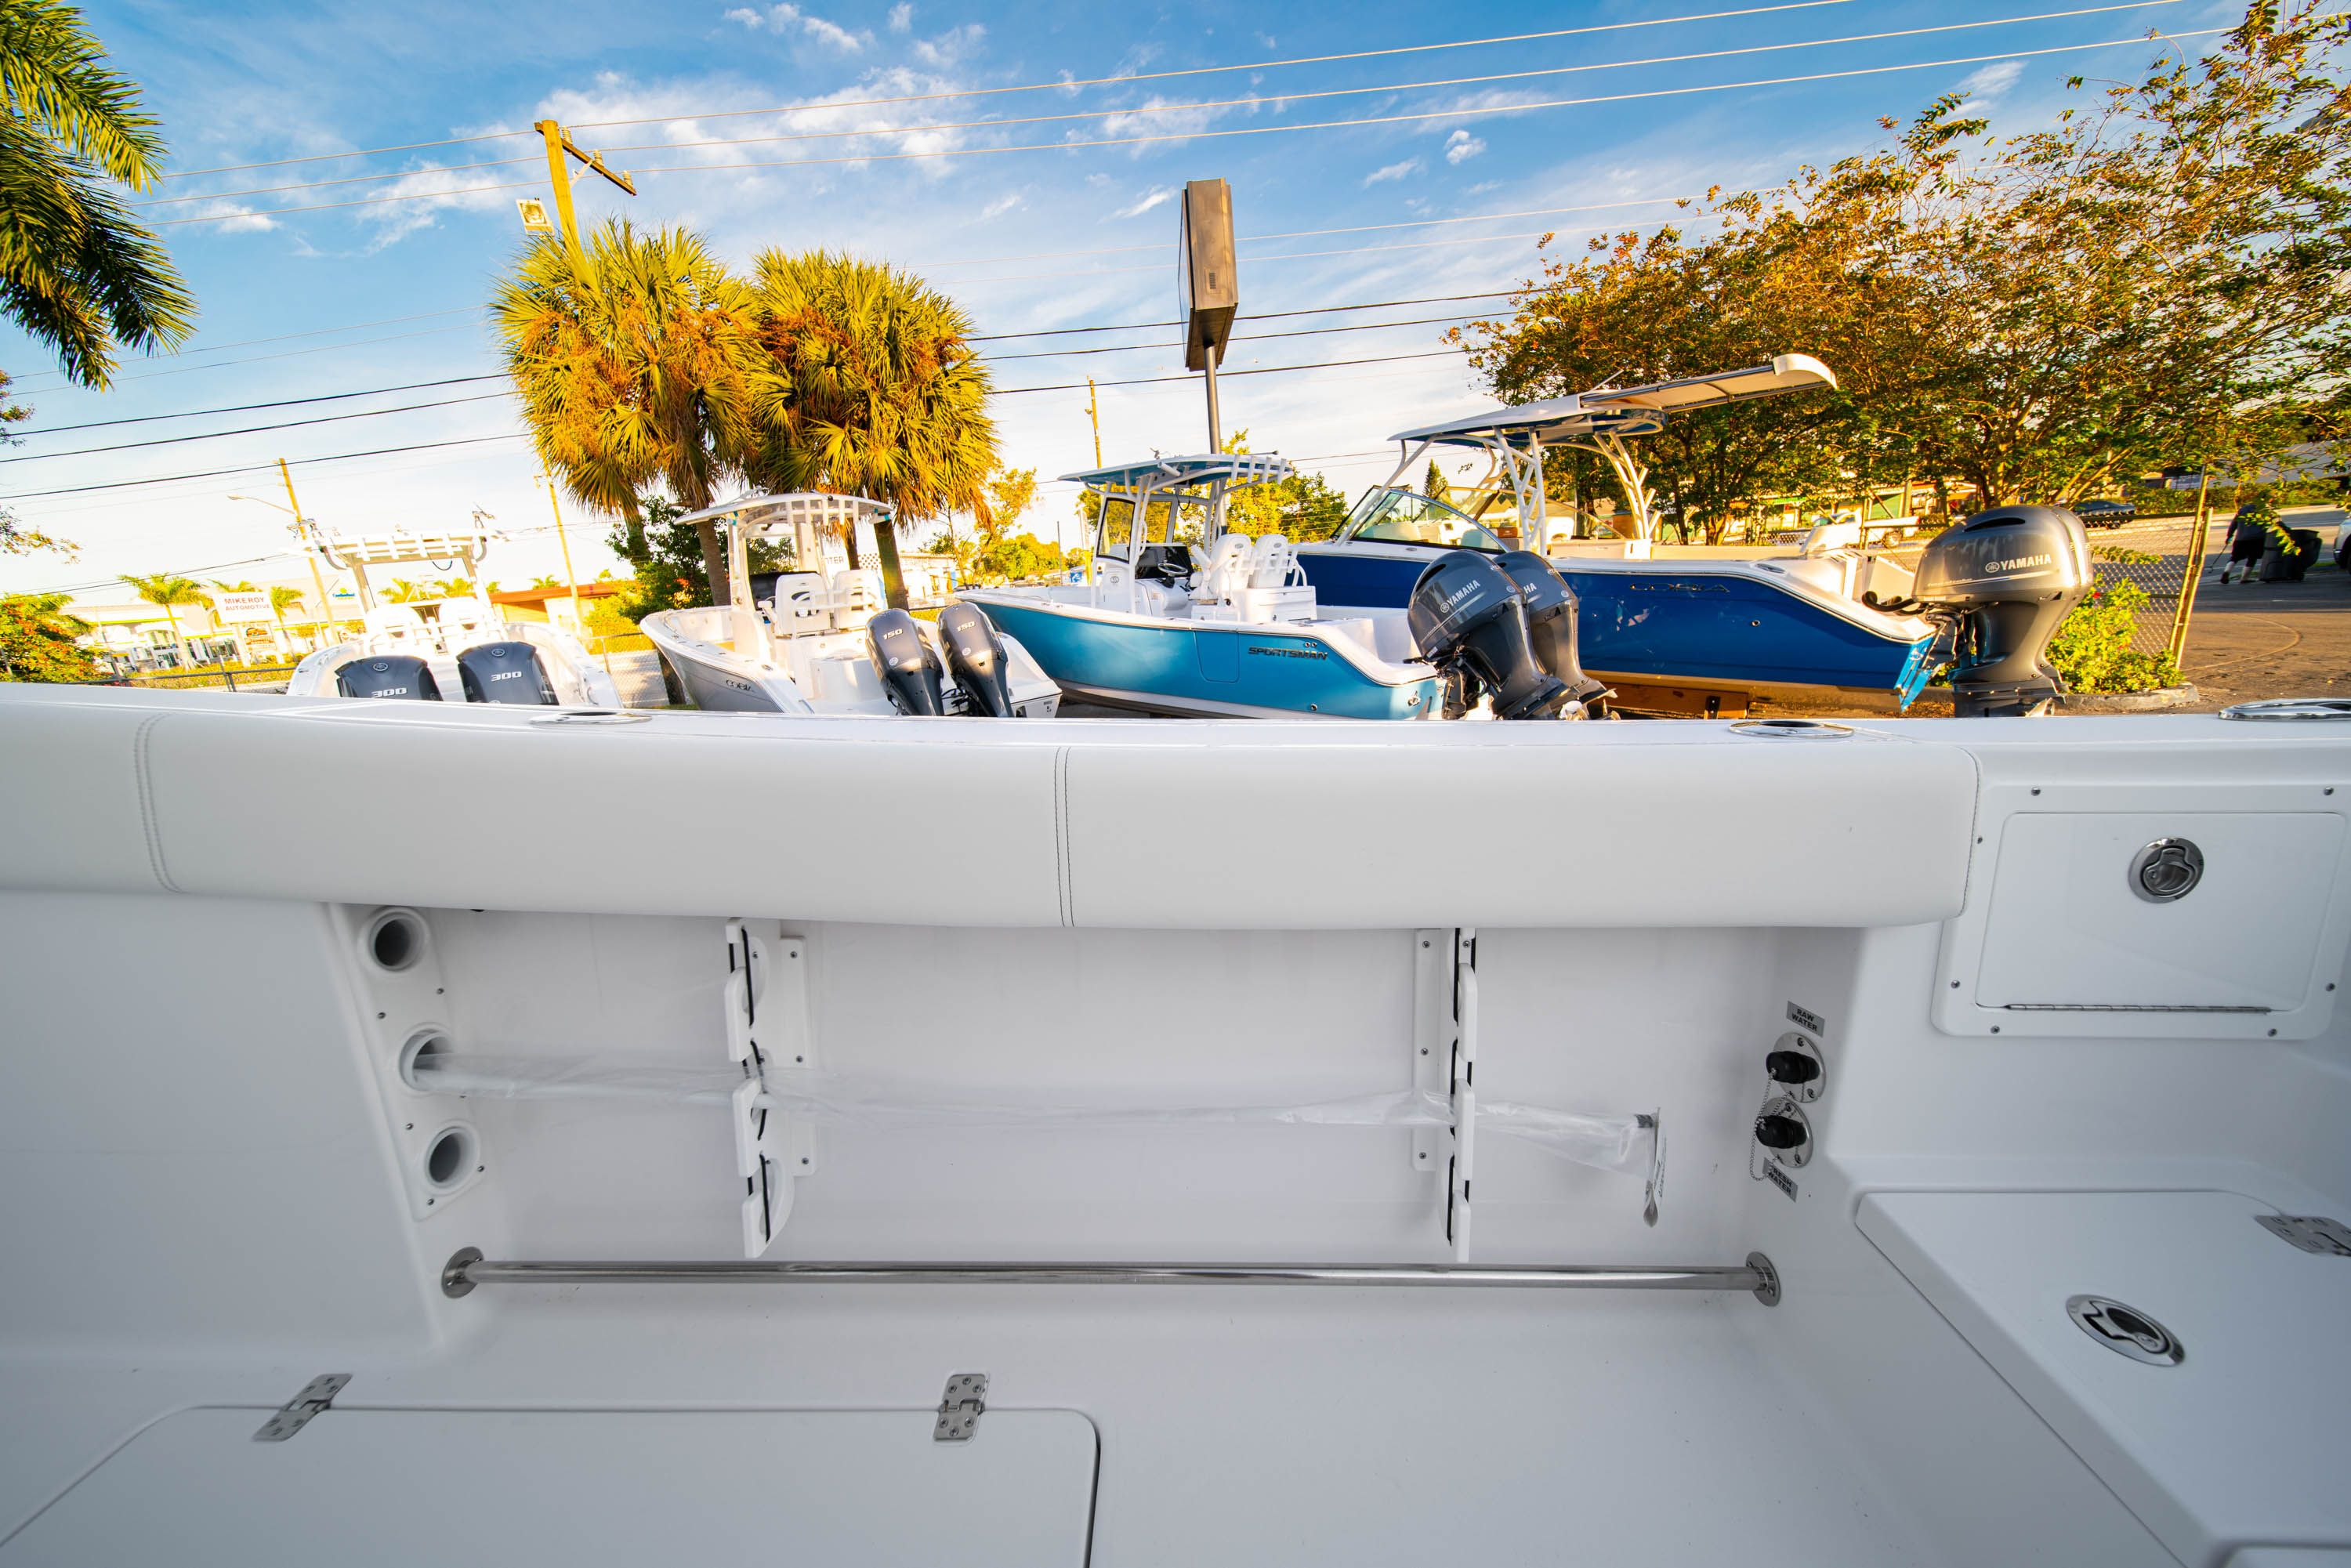 Thumbnail 19 for New 2020 Sportsman Open 252 Center Console boat for sale in West Palm Beach, FL